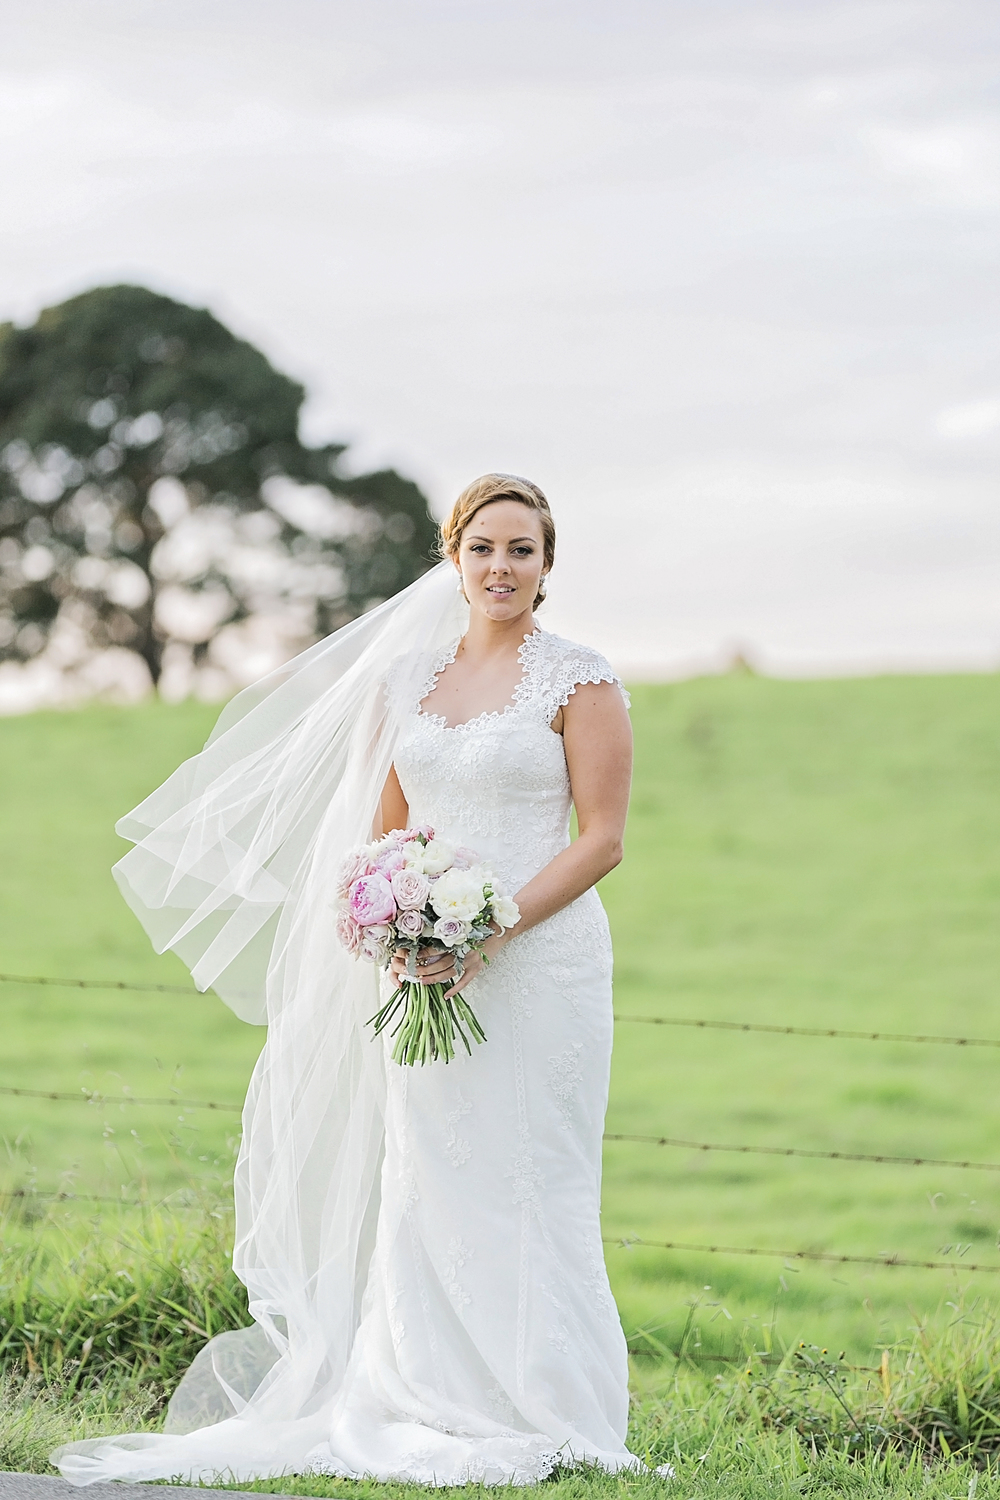 A Classic Old World Vintage Style Wedding In Queensland